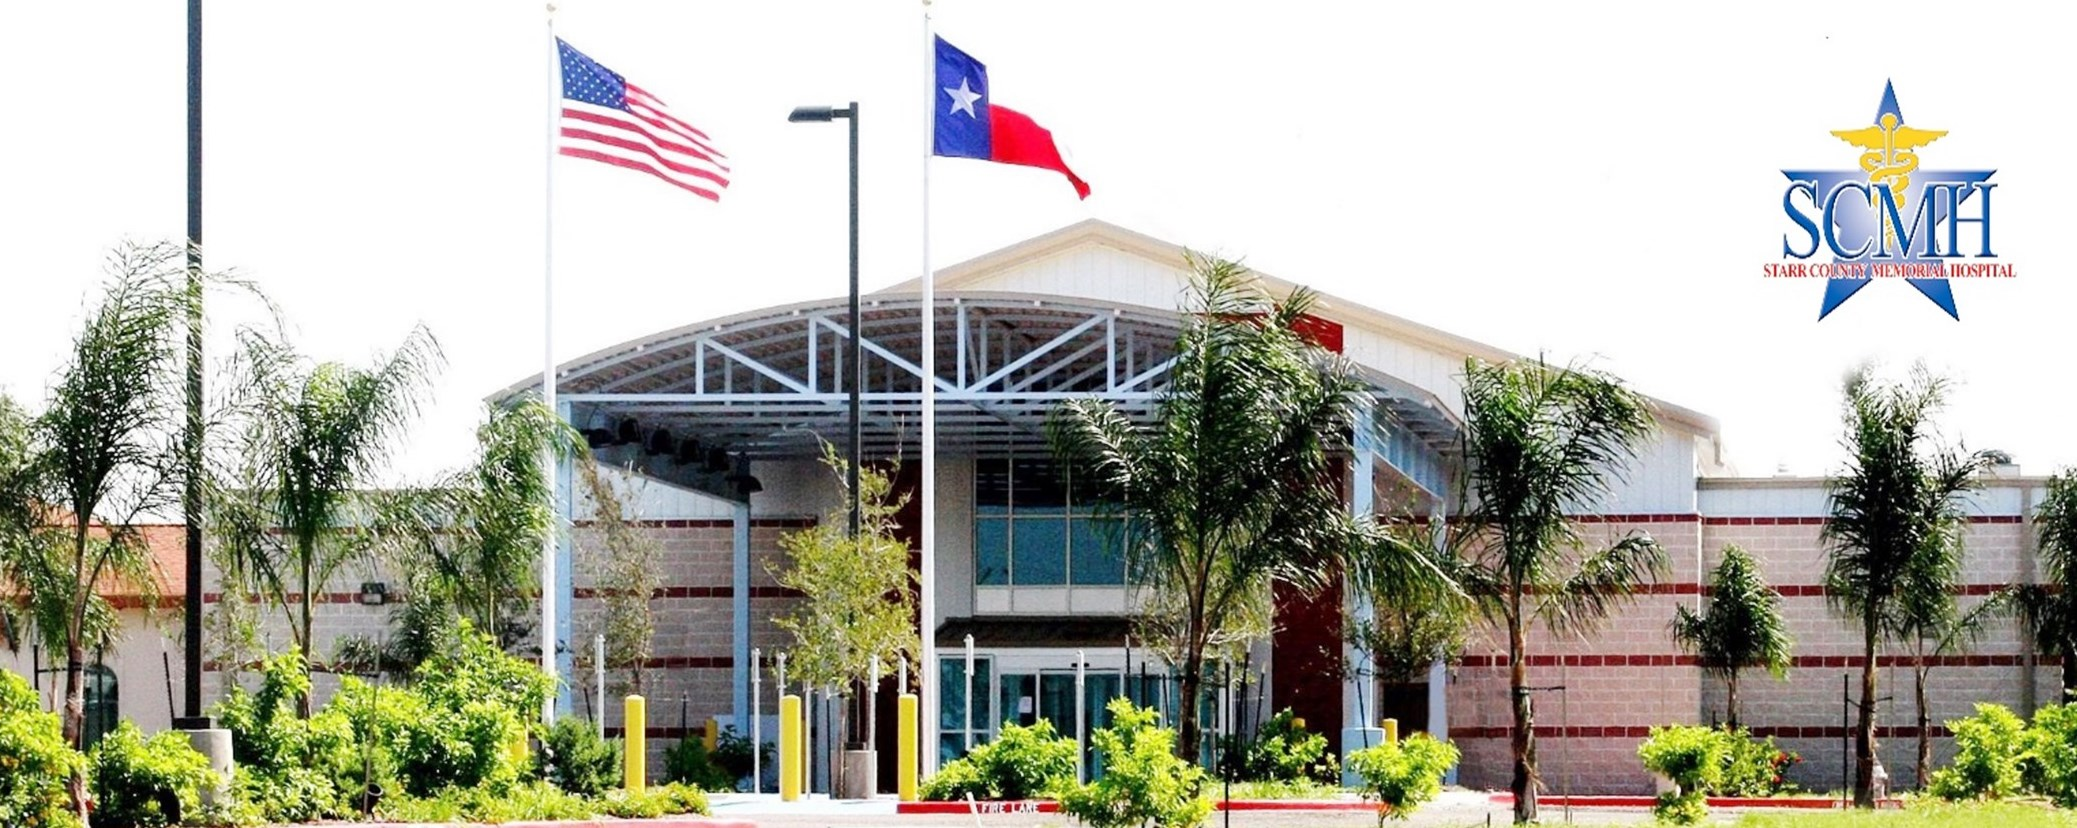 The front exterior of Starr County Memorial hospital on a sunny day with an American and a Texas flag blowing in the wind